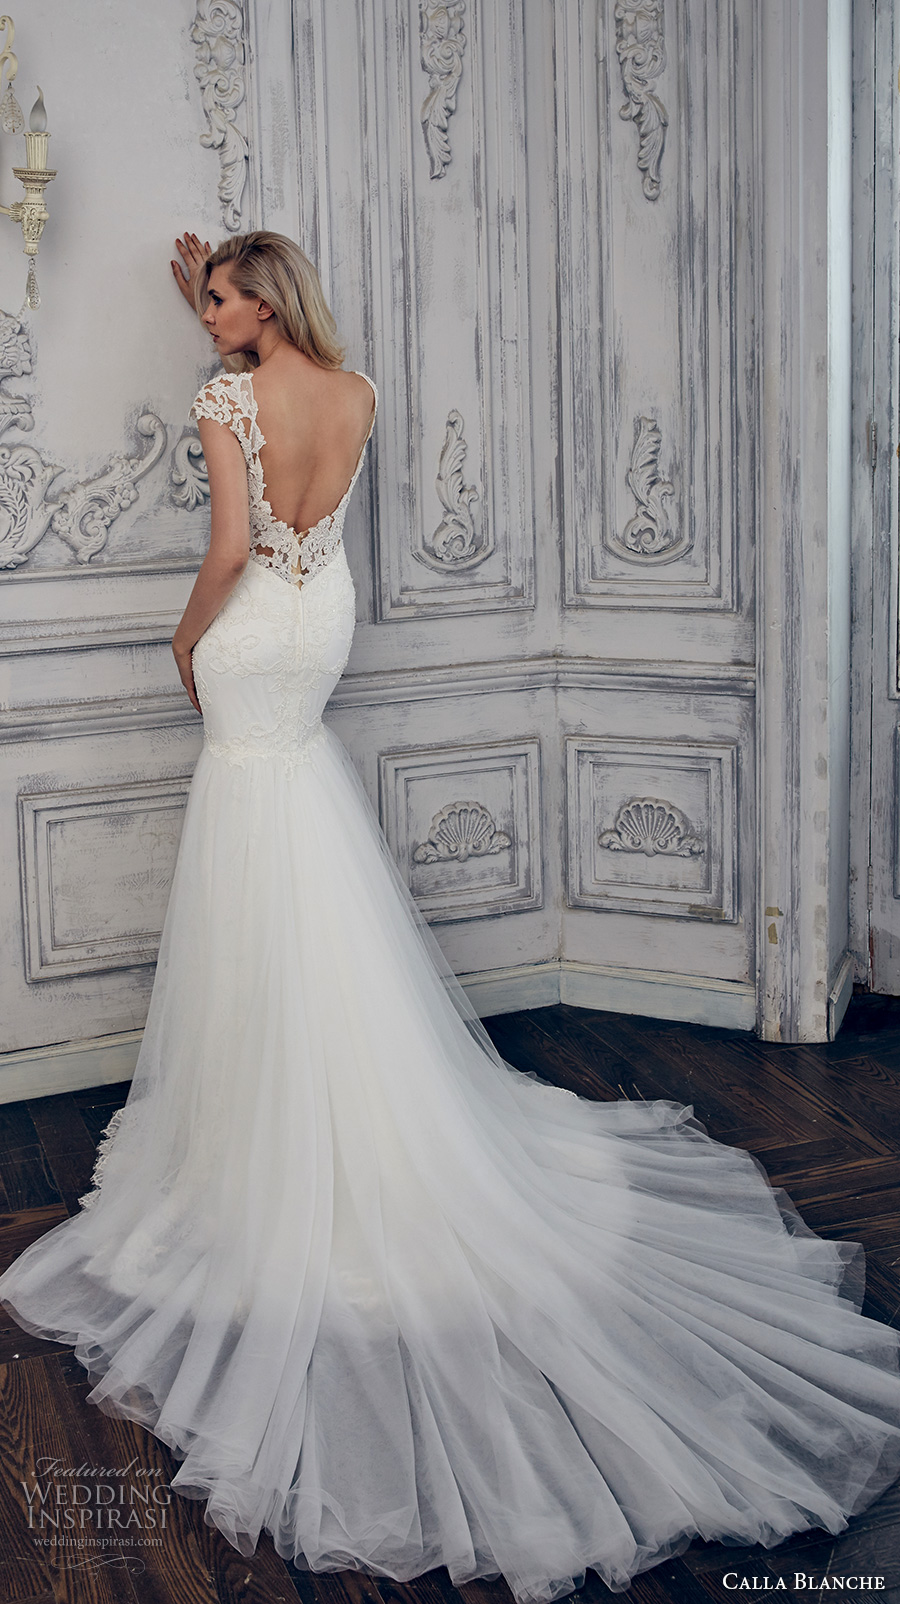 calla blanche spring 2017 bridal cap sleeves deep plunging sweetheart neckline full embellishment elegant fit and flare wedding dress open back chapel train (17101) bv